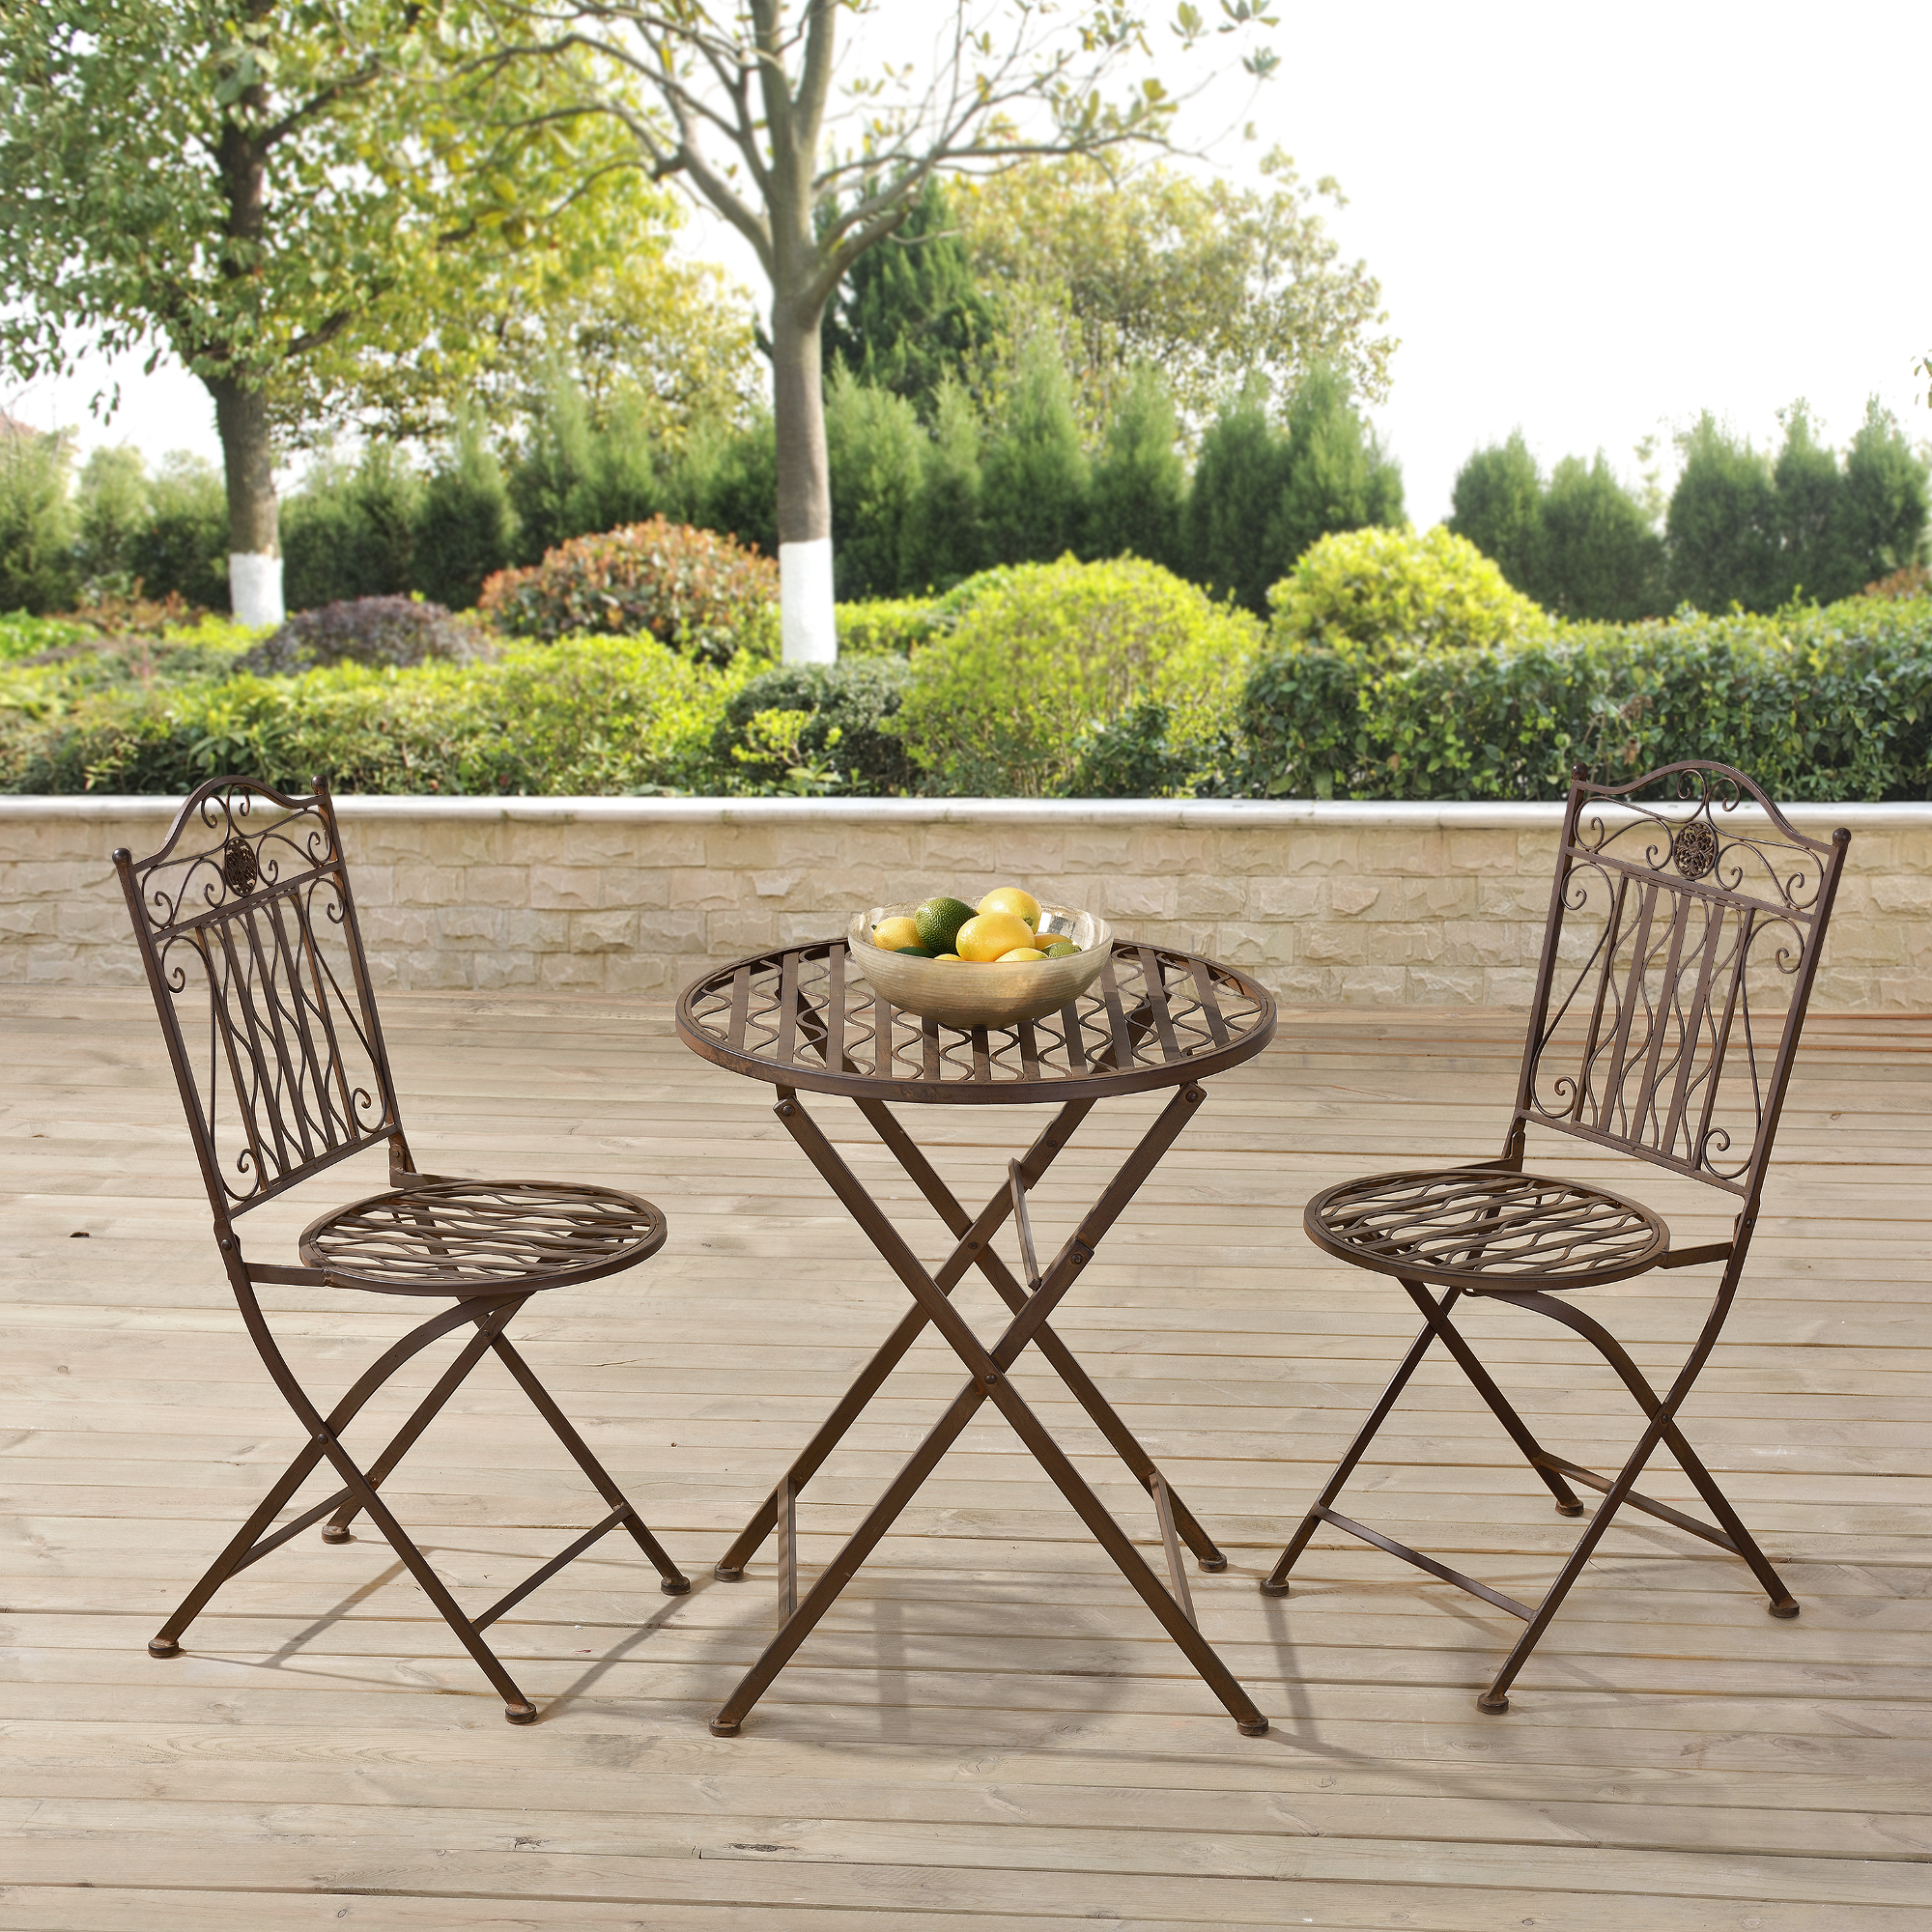 bistro set tisch 2 st hle essgruppe sitzgruppe gartenm bel metall ebay. Black Bedroom Furniture Sets. Home Design Ideas